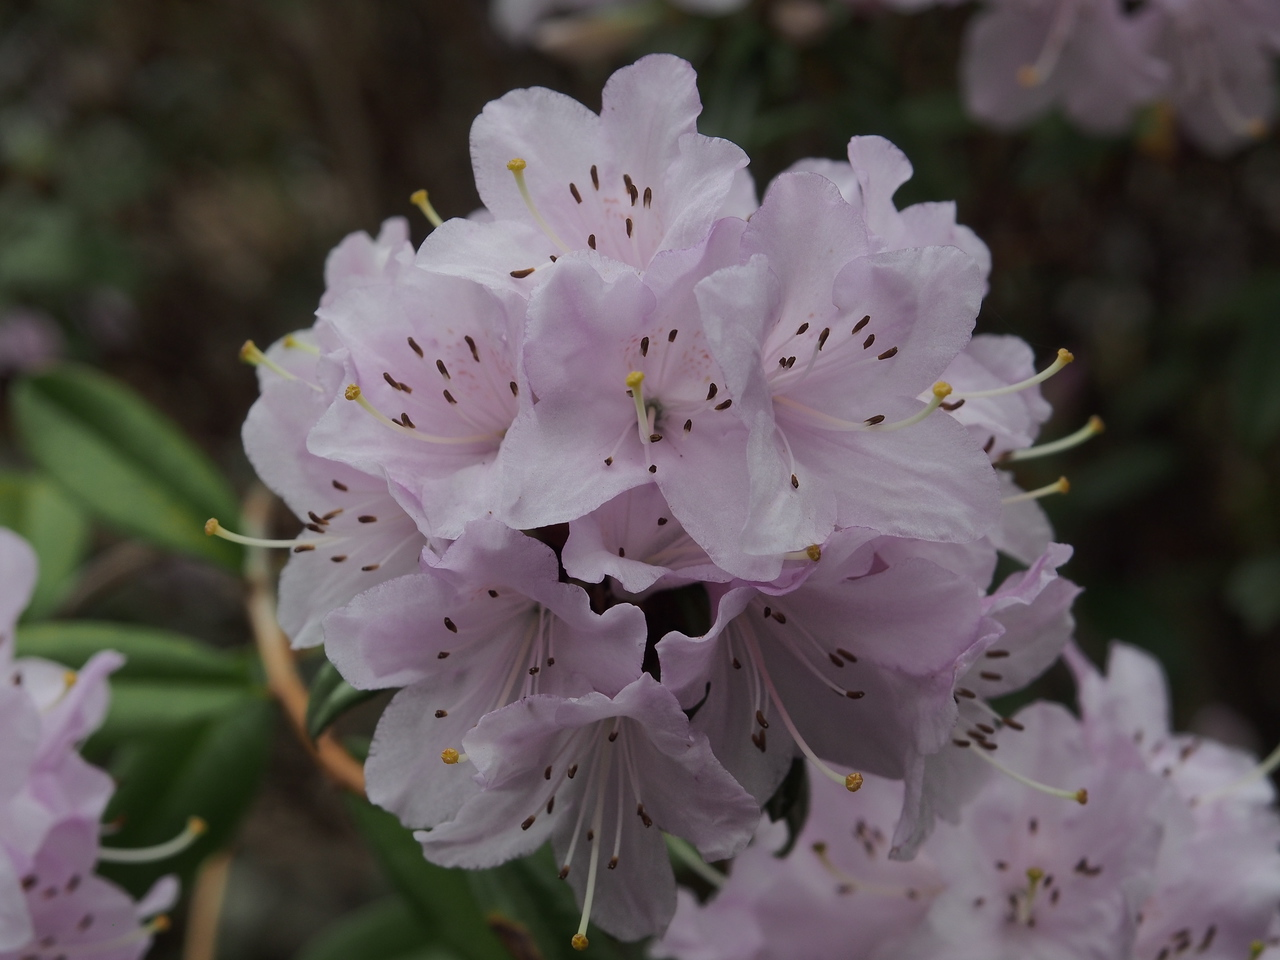 20130914_1425_2757 rhododendron